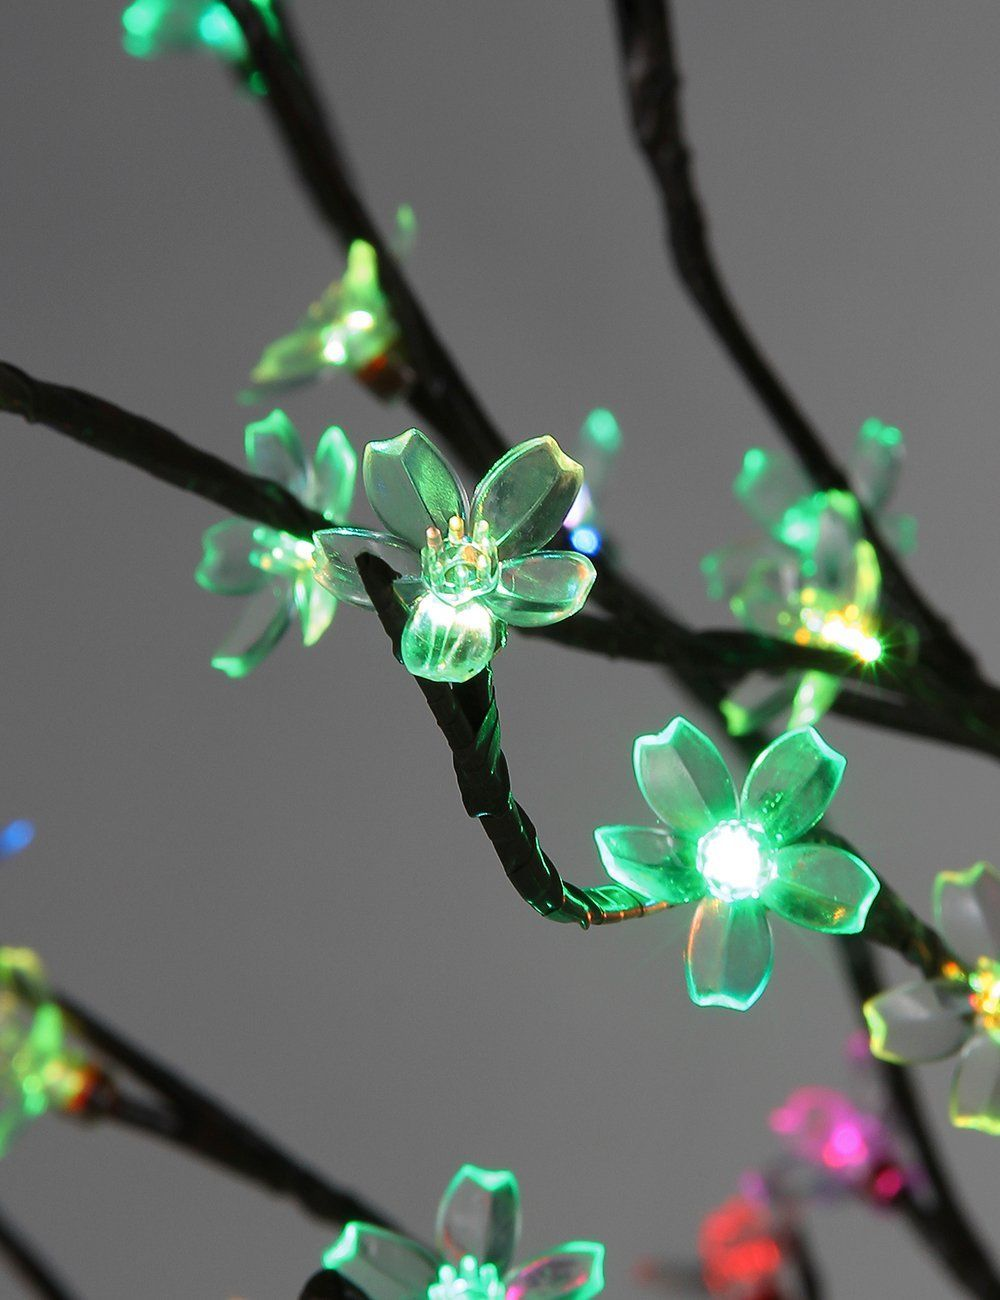 Lightshare NEW 6Ft 208 LED Cherry Blossom Tree Light,Slow-Color ...